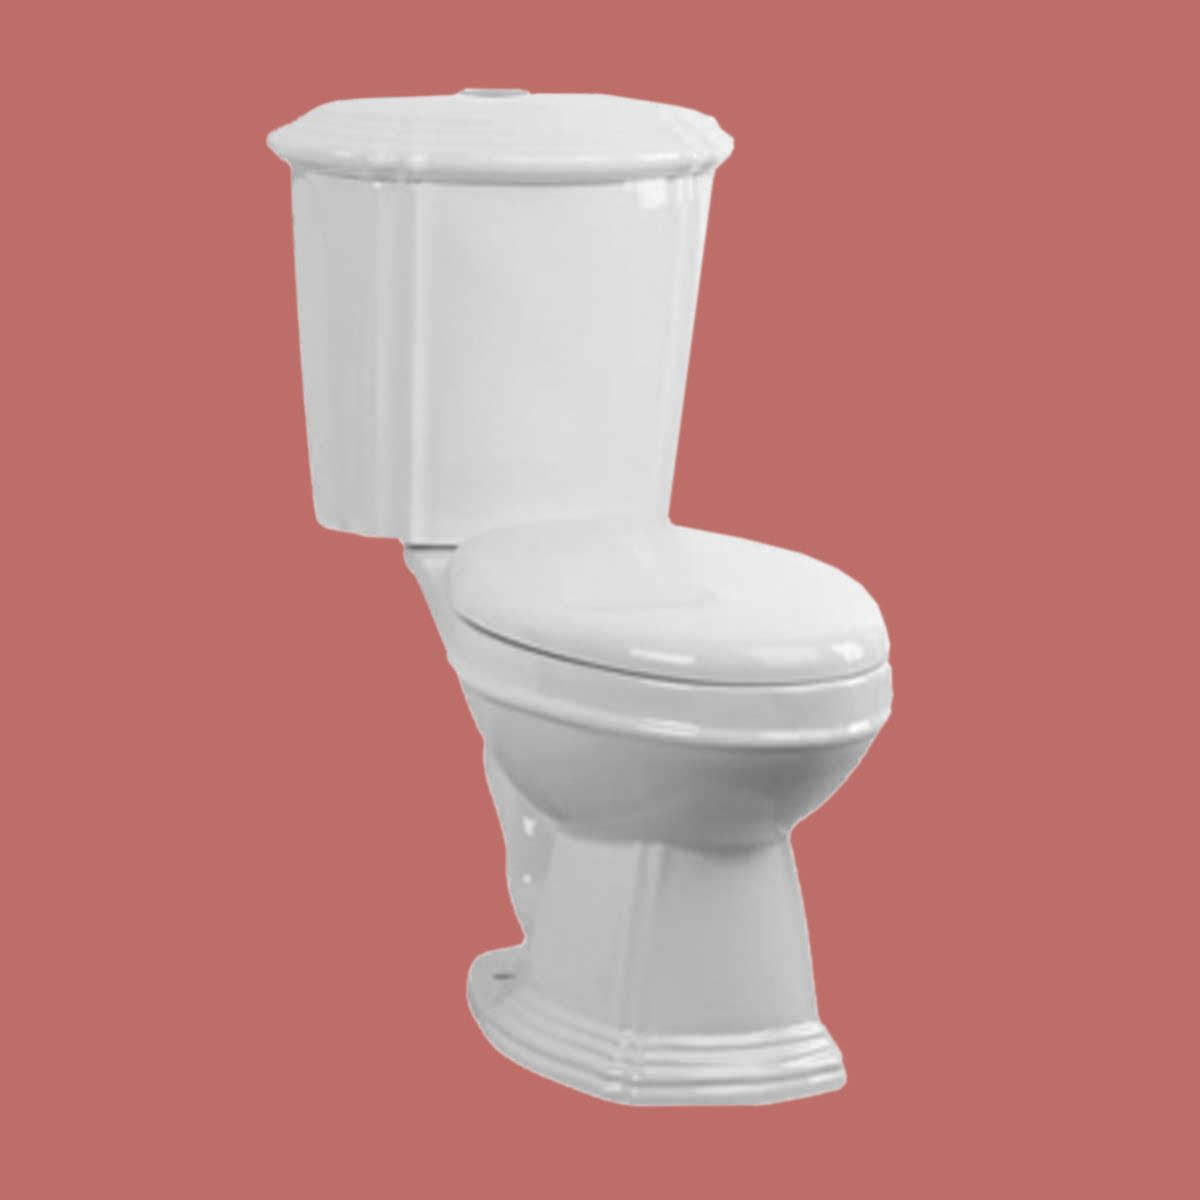 White Sheffield Round Dual Top Flush Toilet Measures 31 3 4 Inch Height X 25 1 2 Inch Projection Toilet Dual Flush Toilet Flush